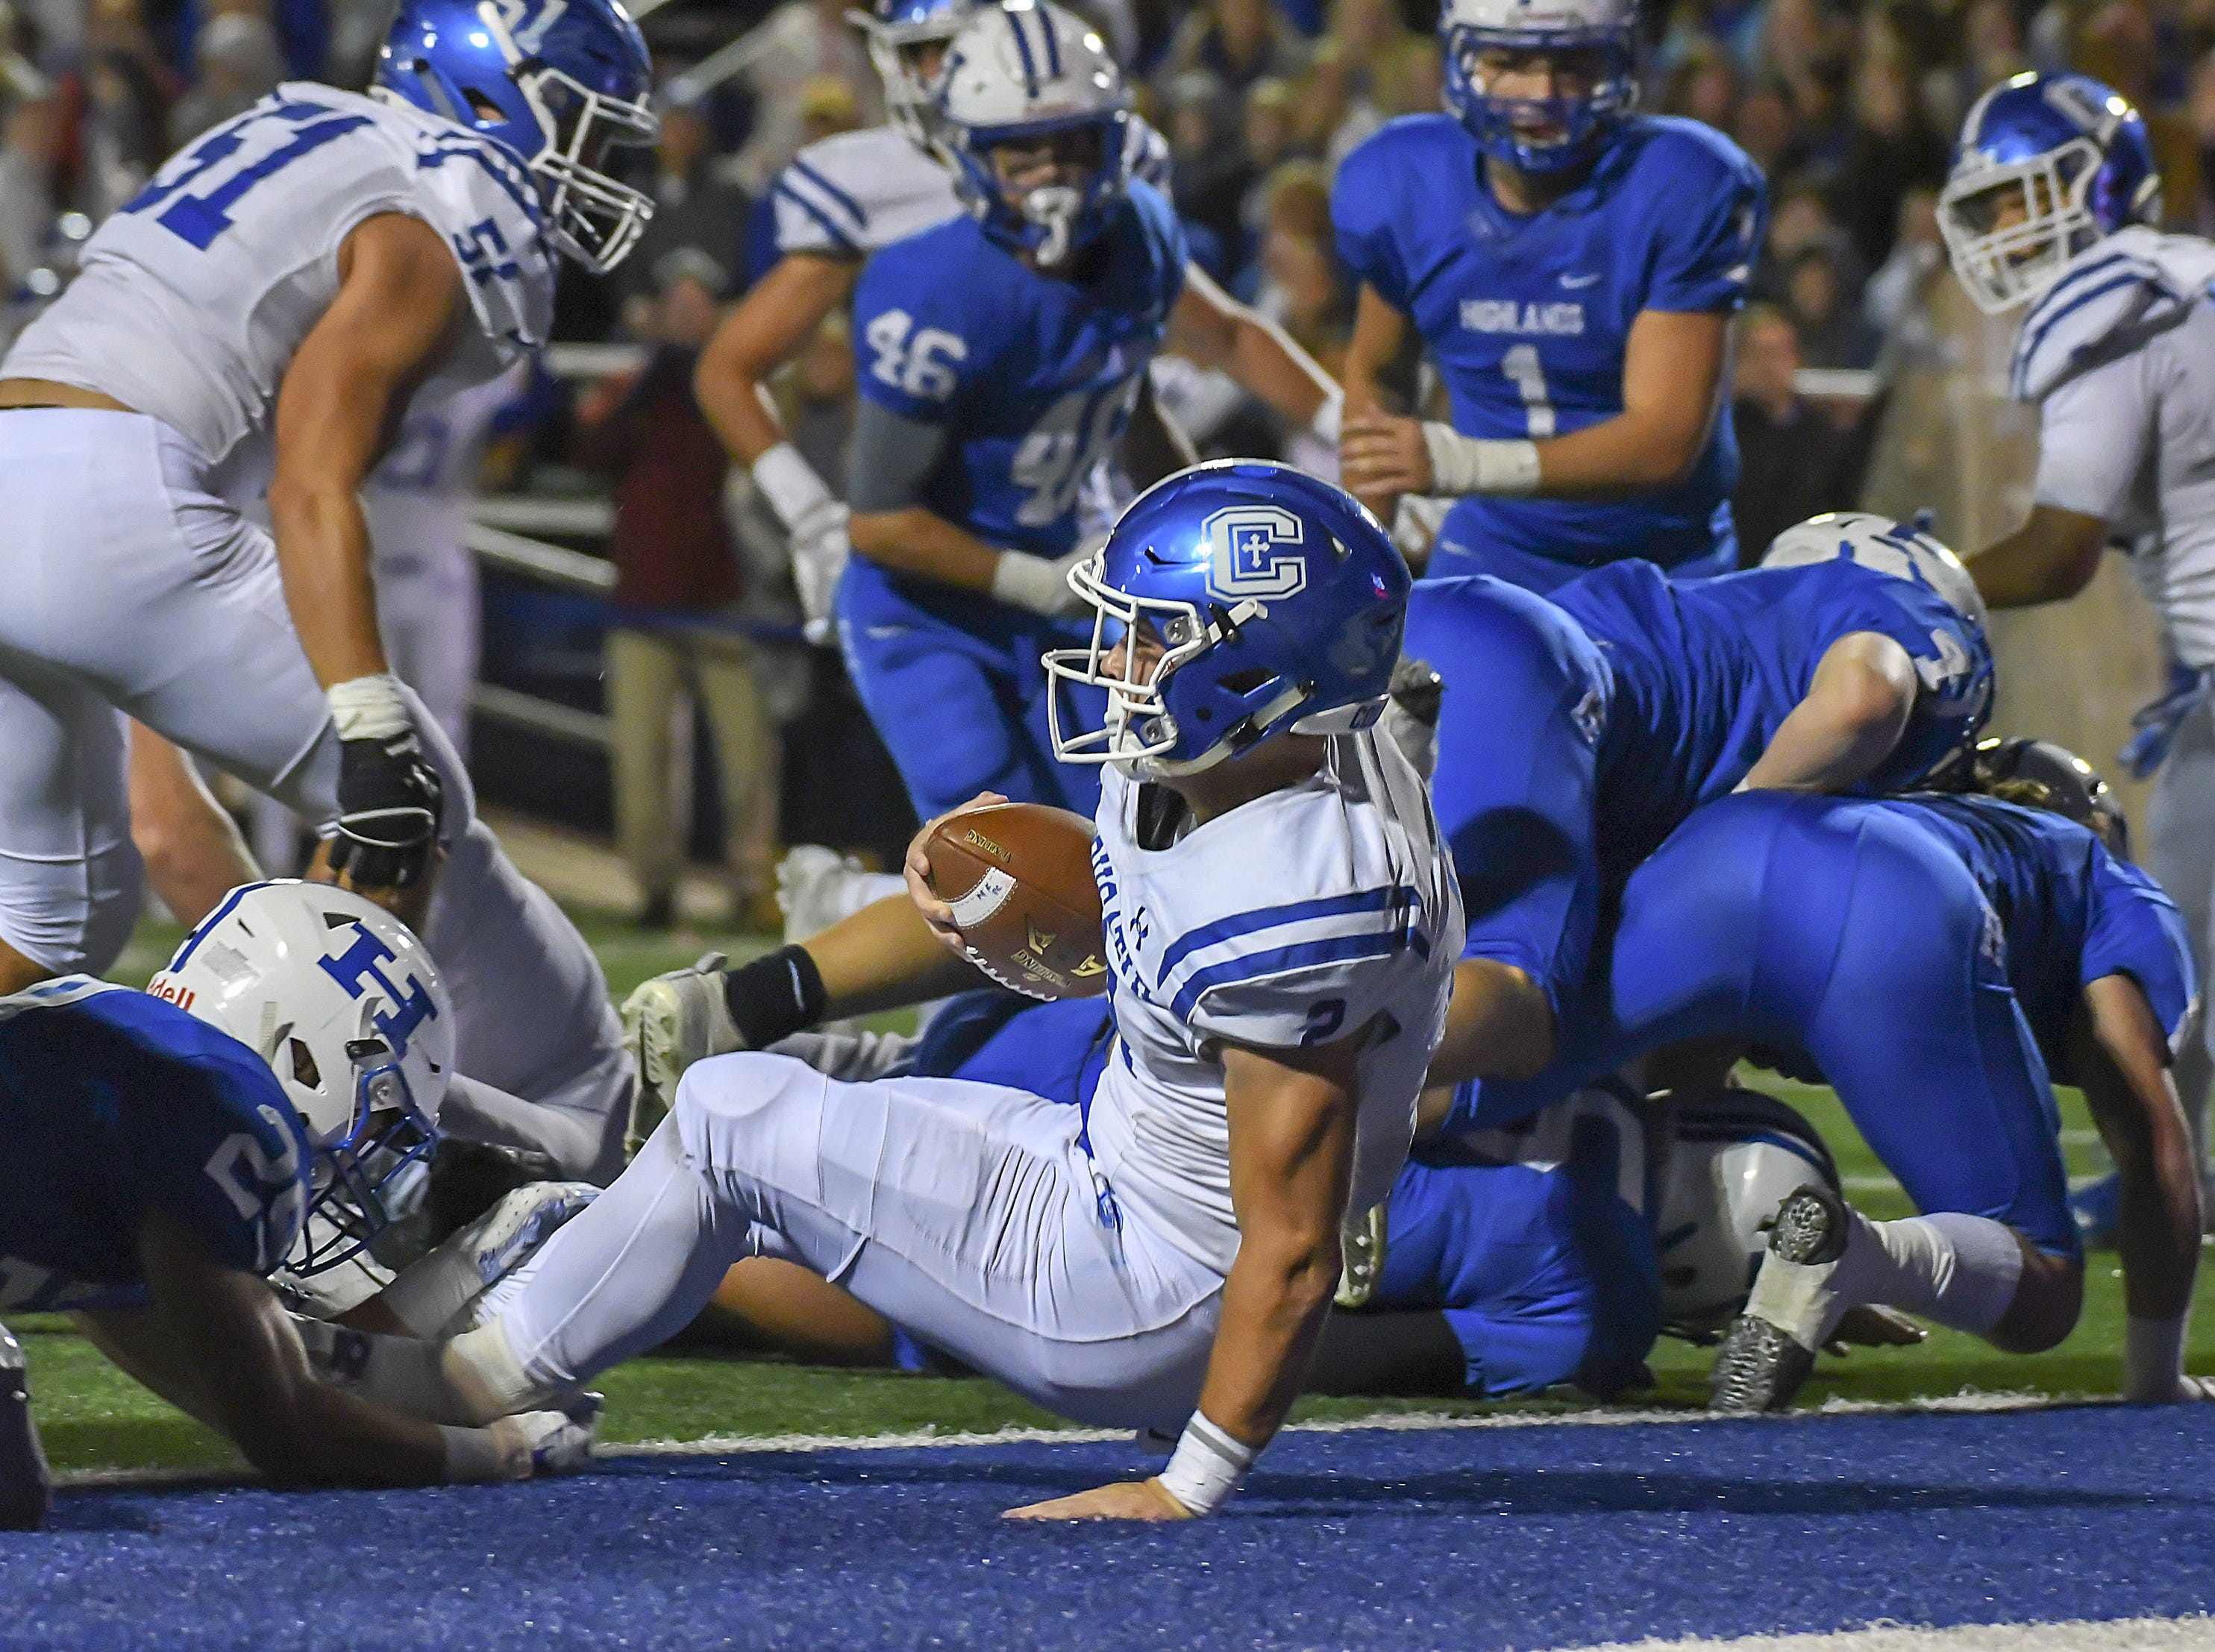 Casey McGinness of Covington Catholic scores a touchdown against Highlands, Highlands High School, Ft. Thomas, KY, Friday, October 12, 2018